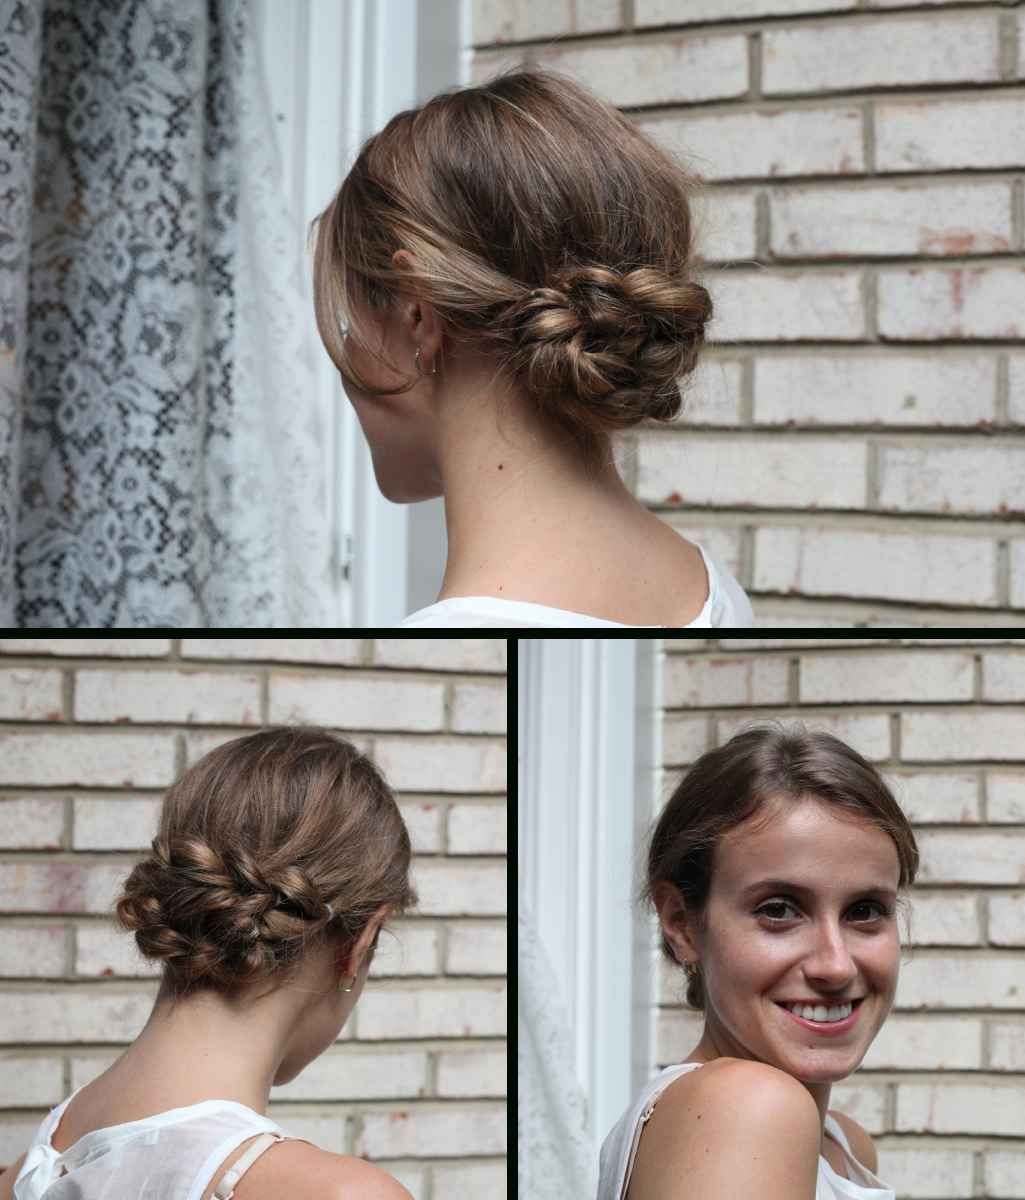 Widely Used Tie It Up Updo Hairstyles With 10 Quick And Easy Hairstyles For Updo Newbies – Verily (View 20 of 20)